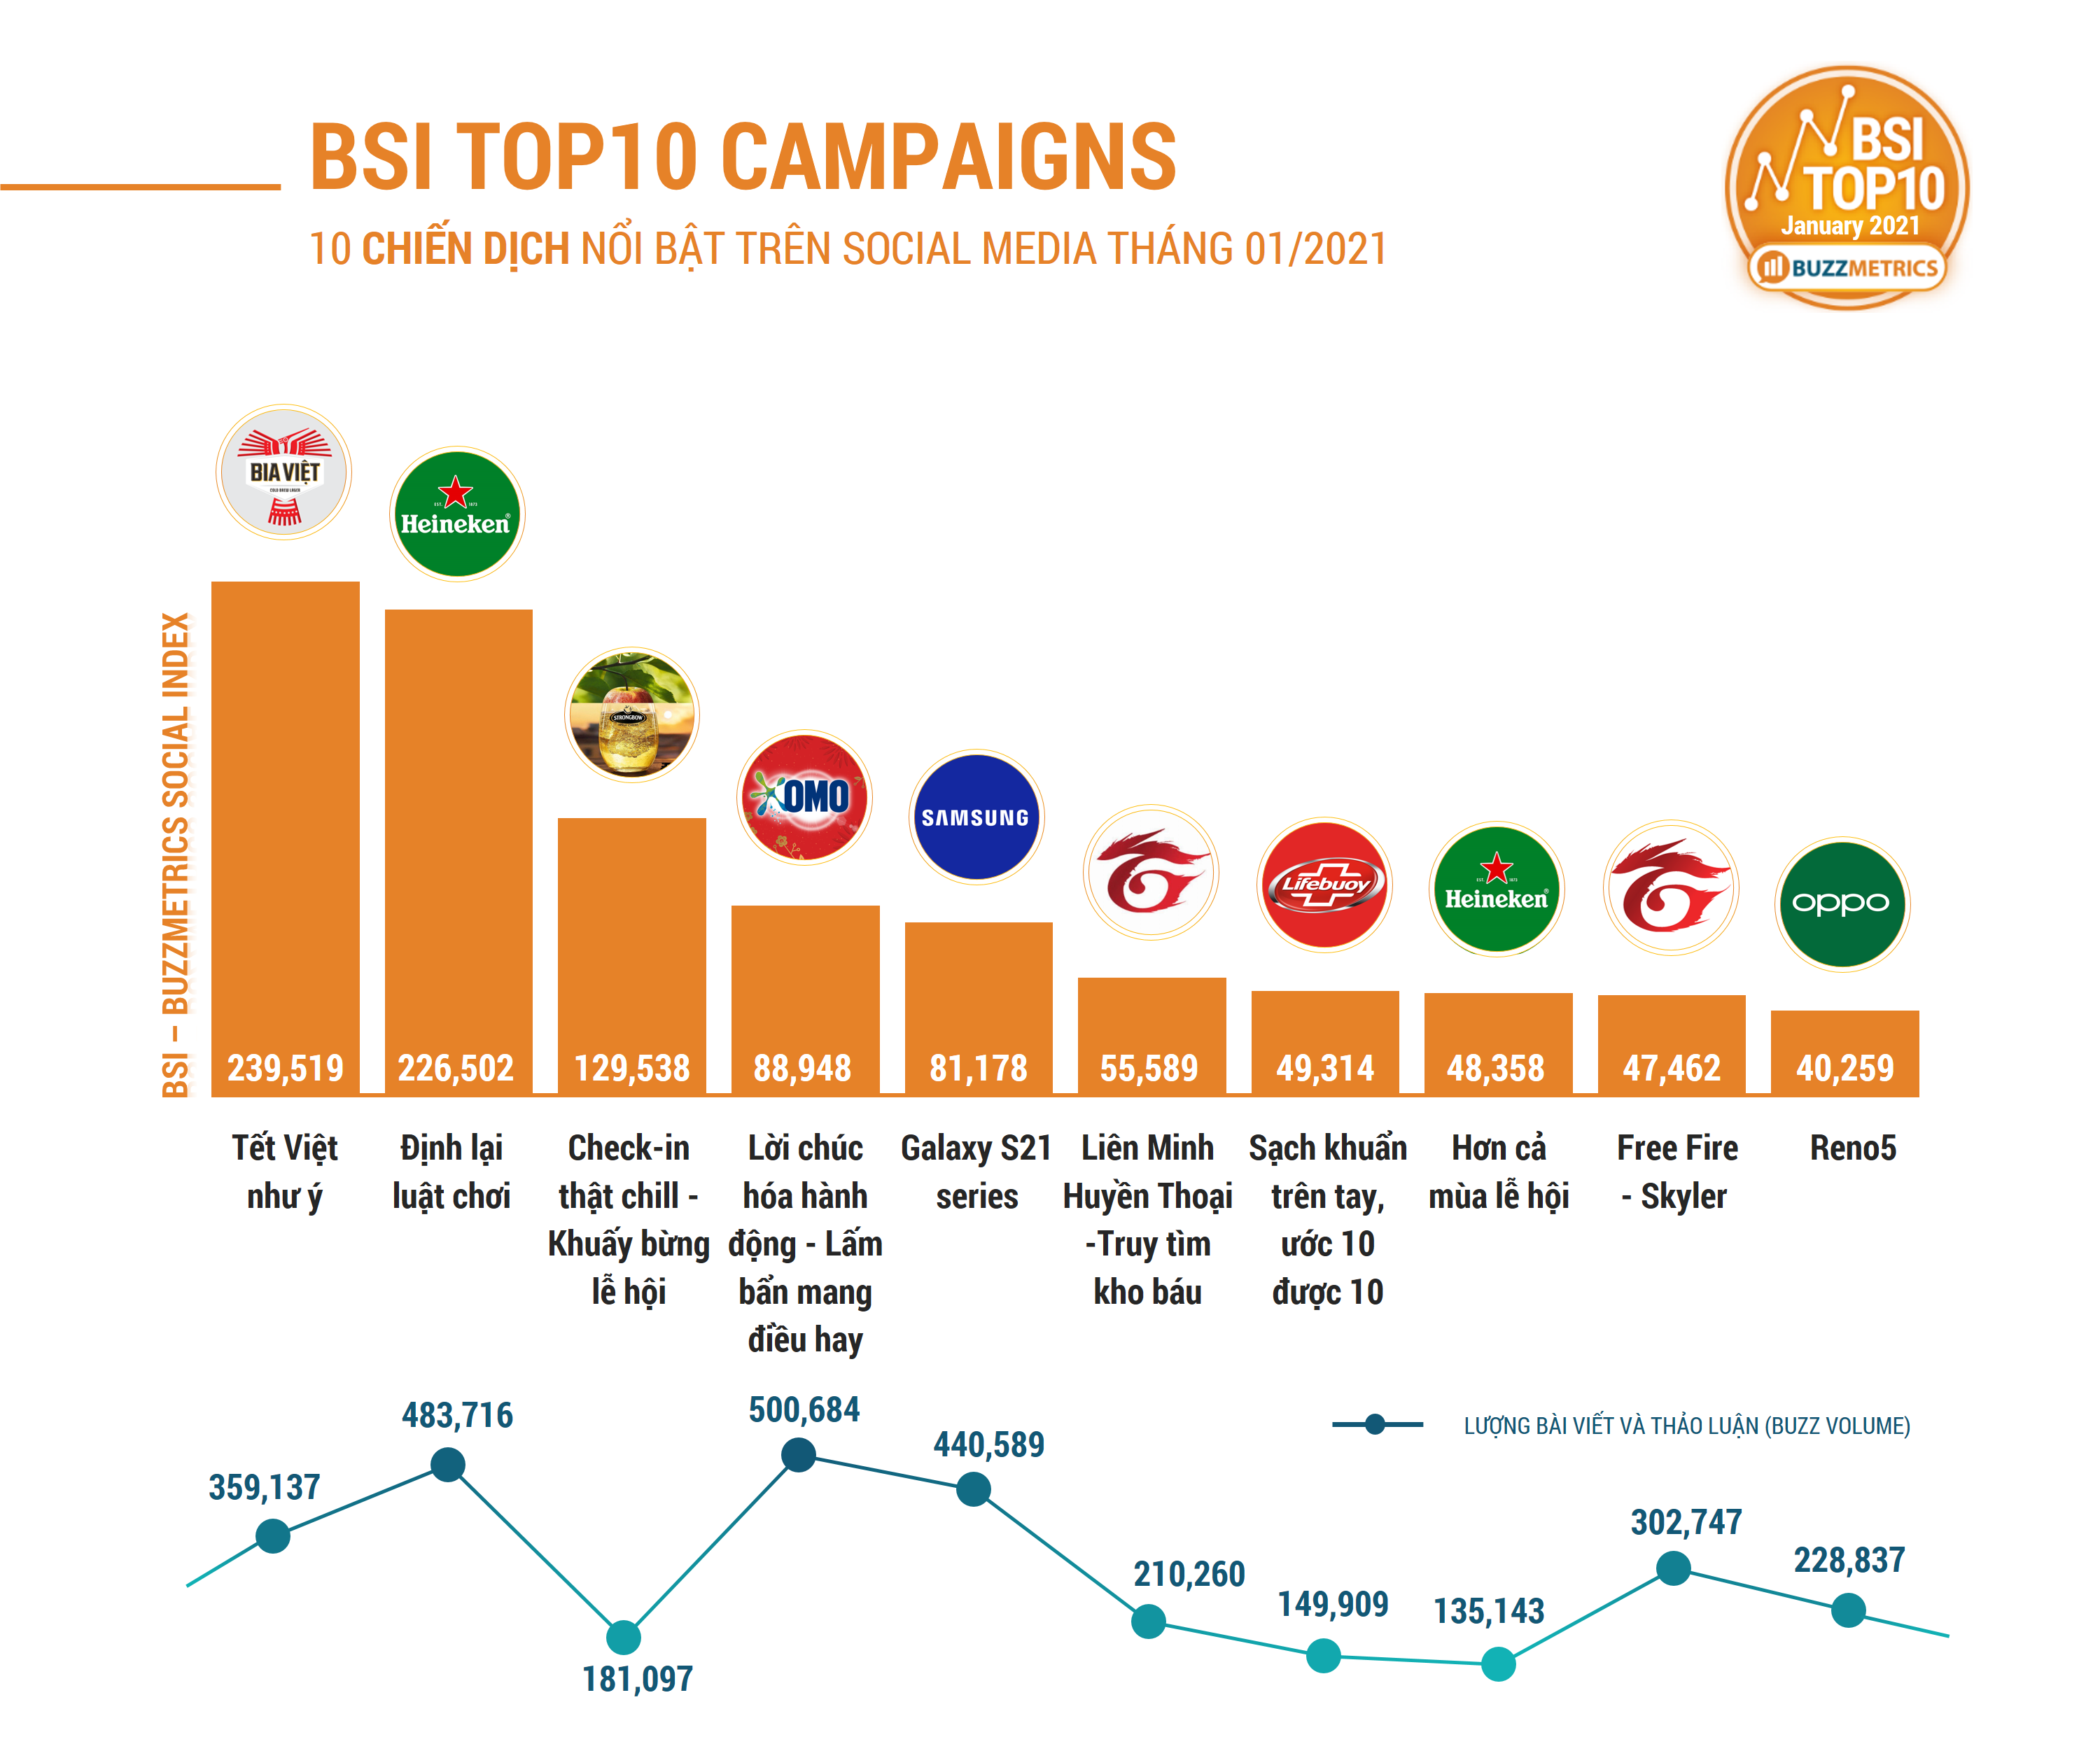 BSI TOP10 JAN 2021 CAMPAIGNS CHART1